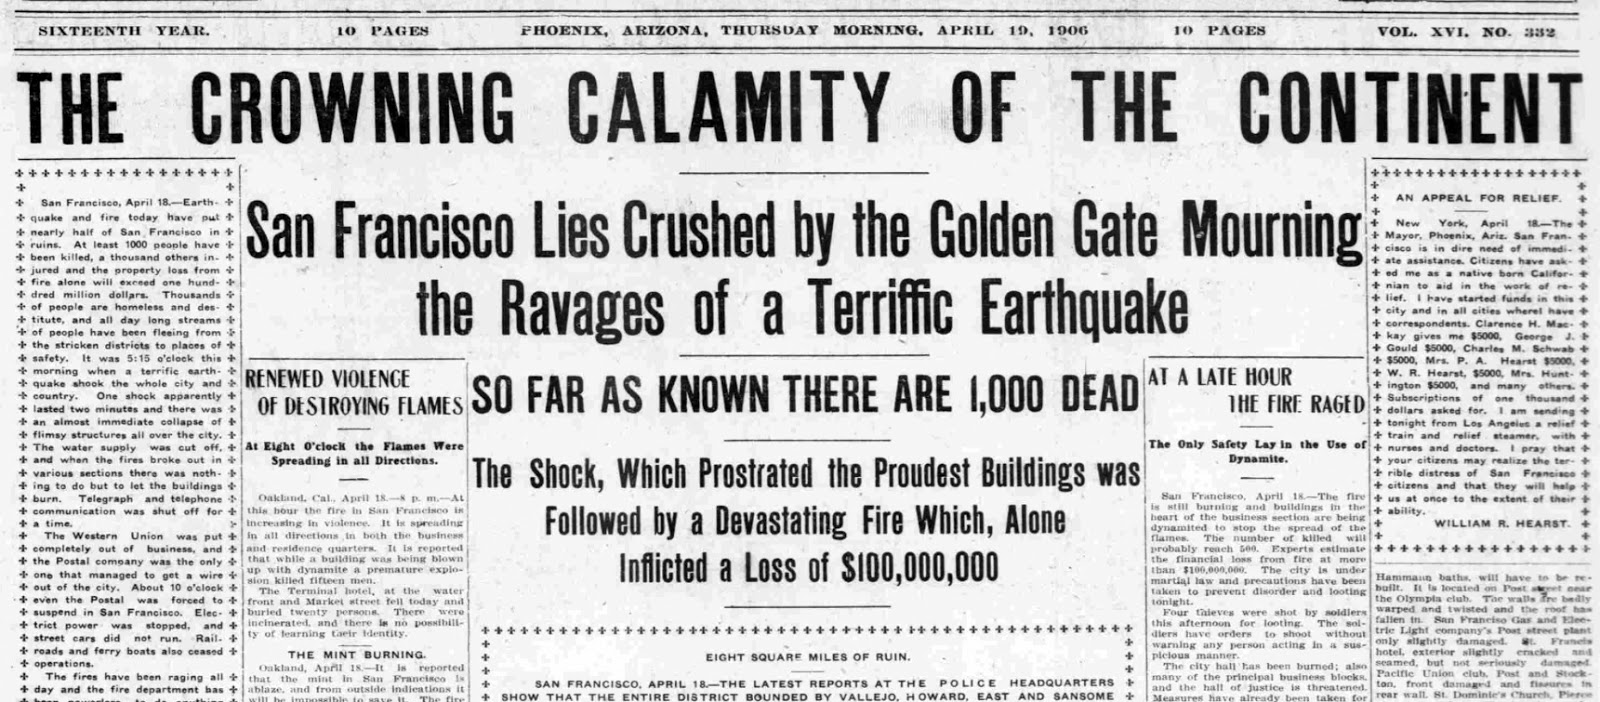 how phoenix was affected by the 1906 san francisco earthquake